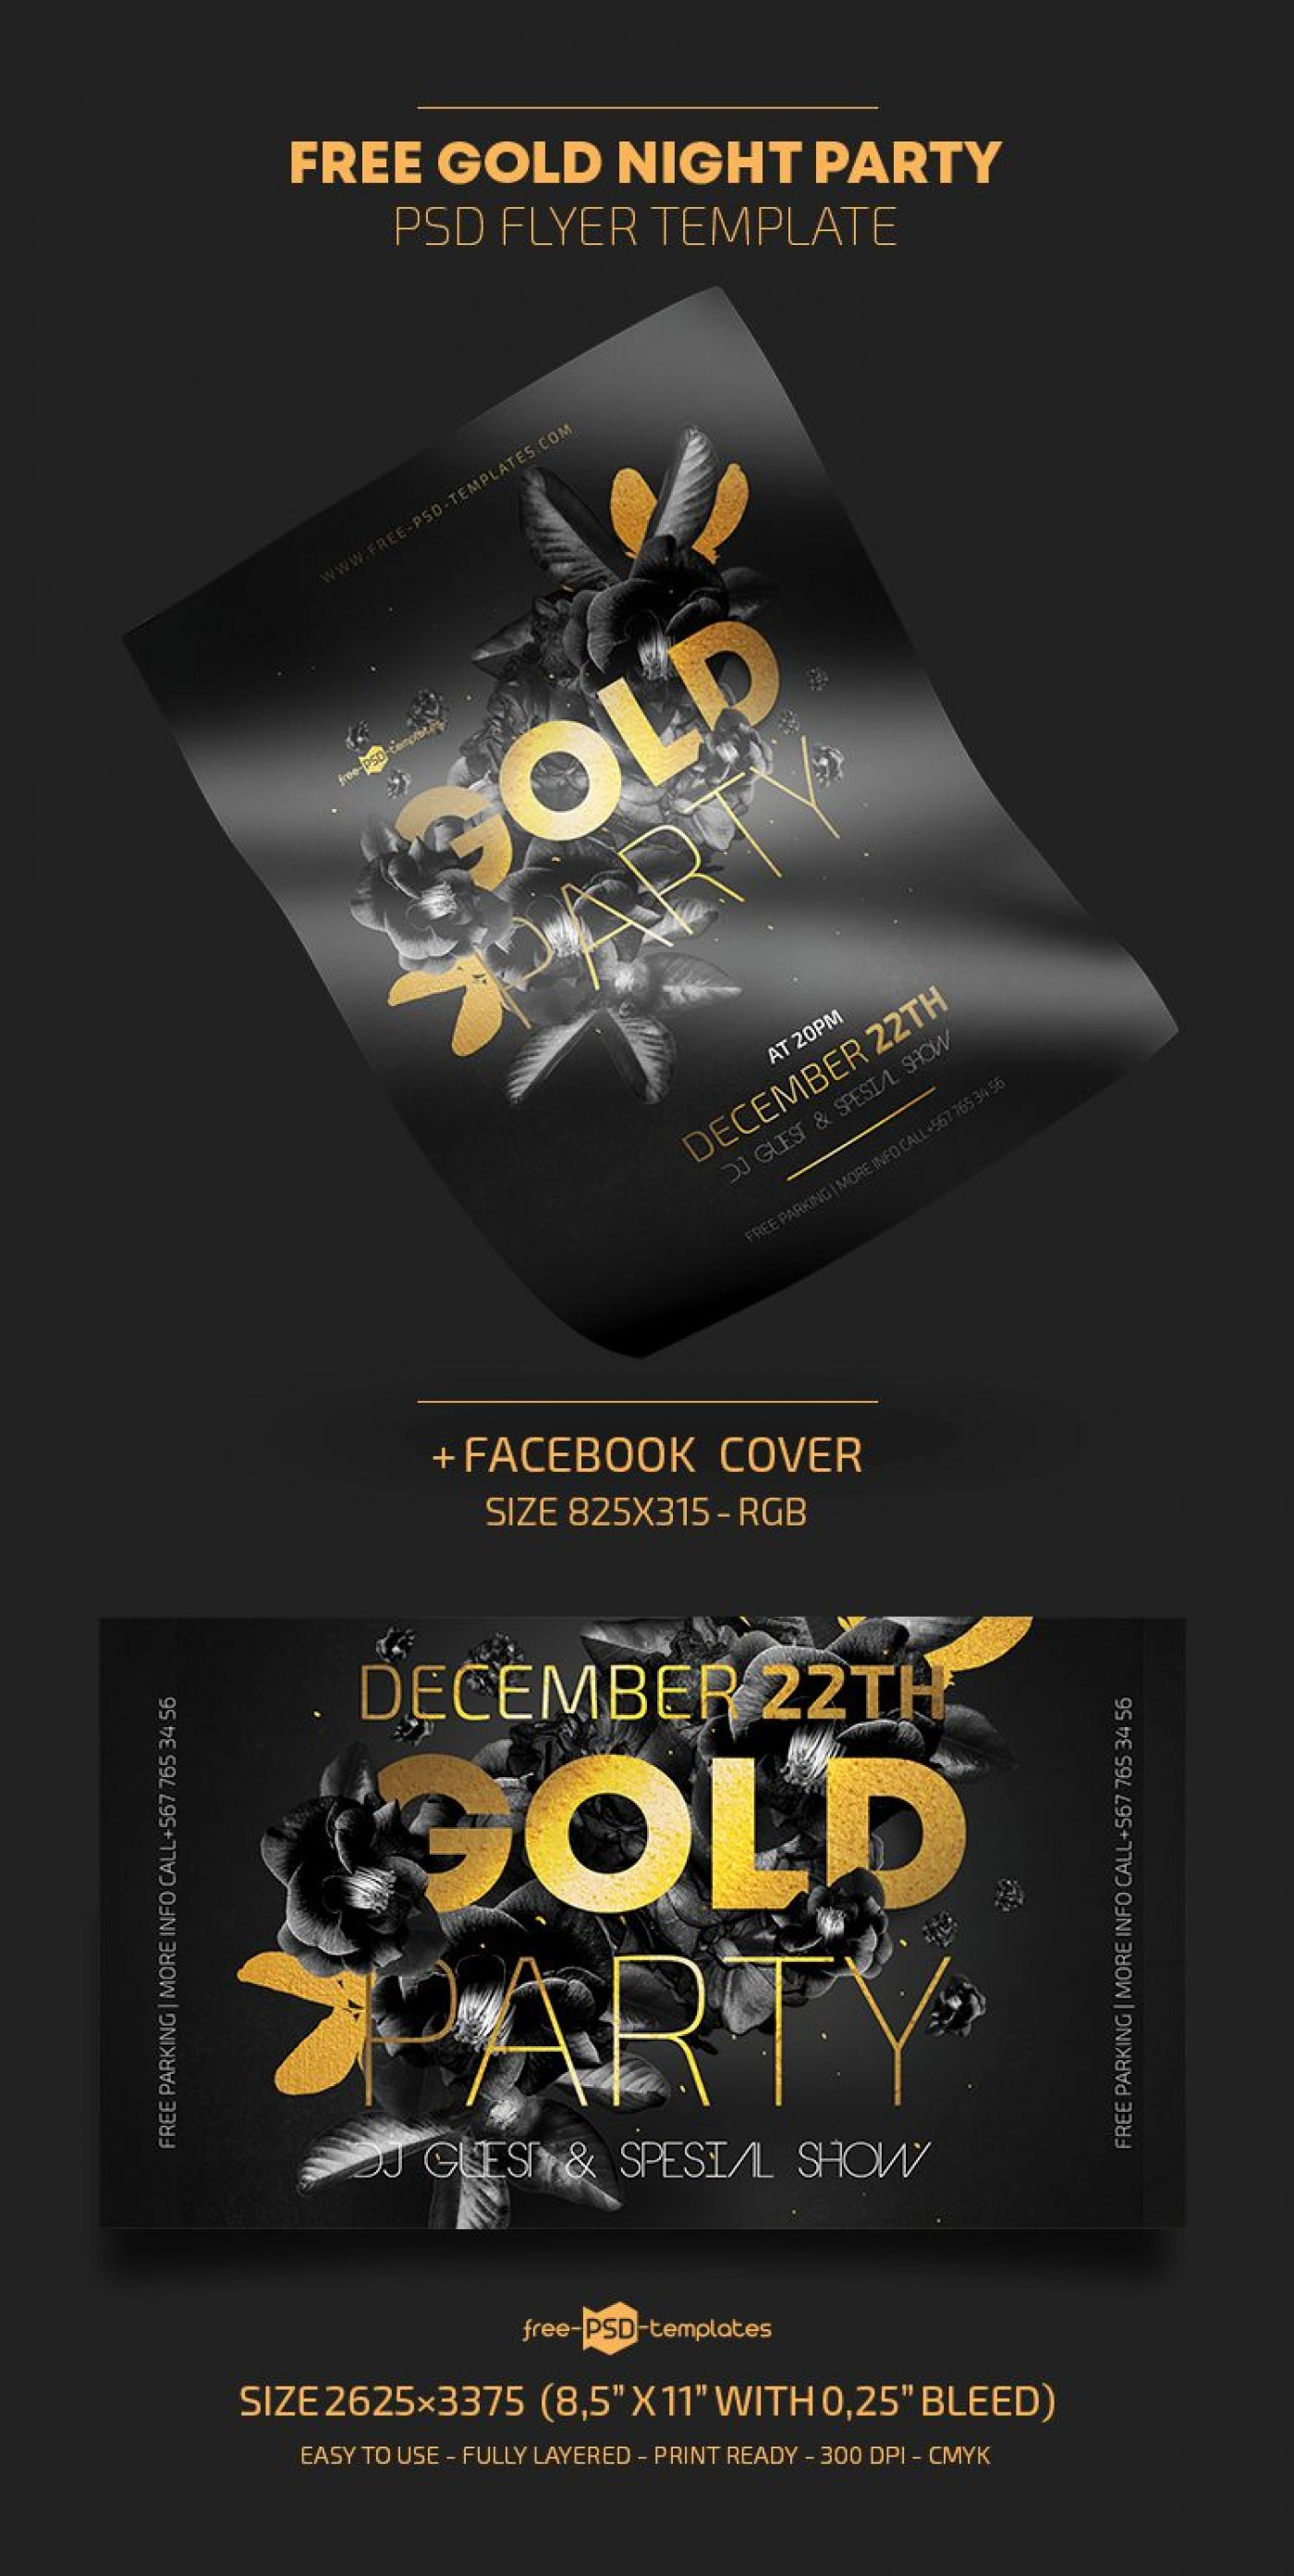 009 Marvelou Free Party Flyer Template For Photoshop Picture  Pool Psd Download1400